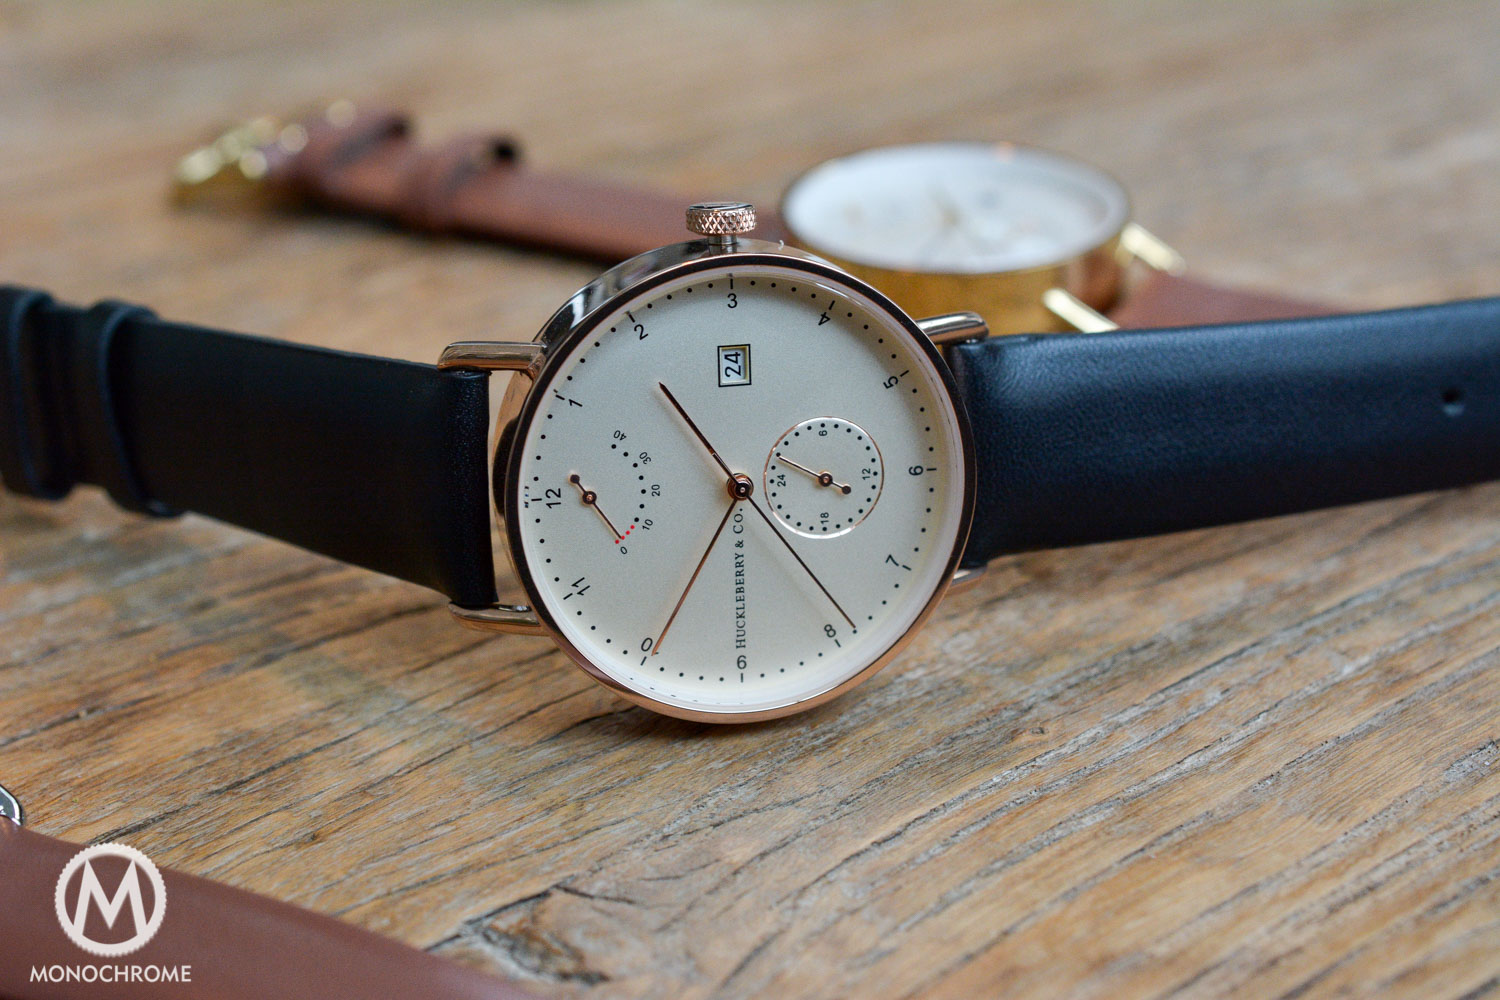 Huckleberry & Co Atticus Watch - Kickstarter